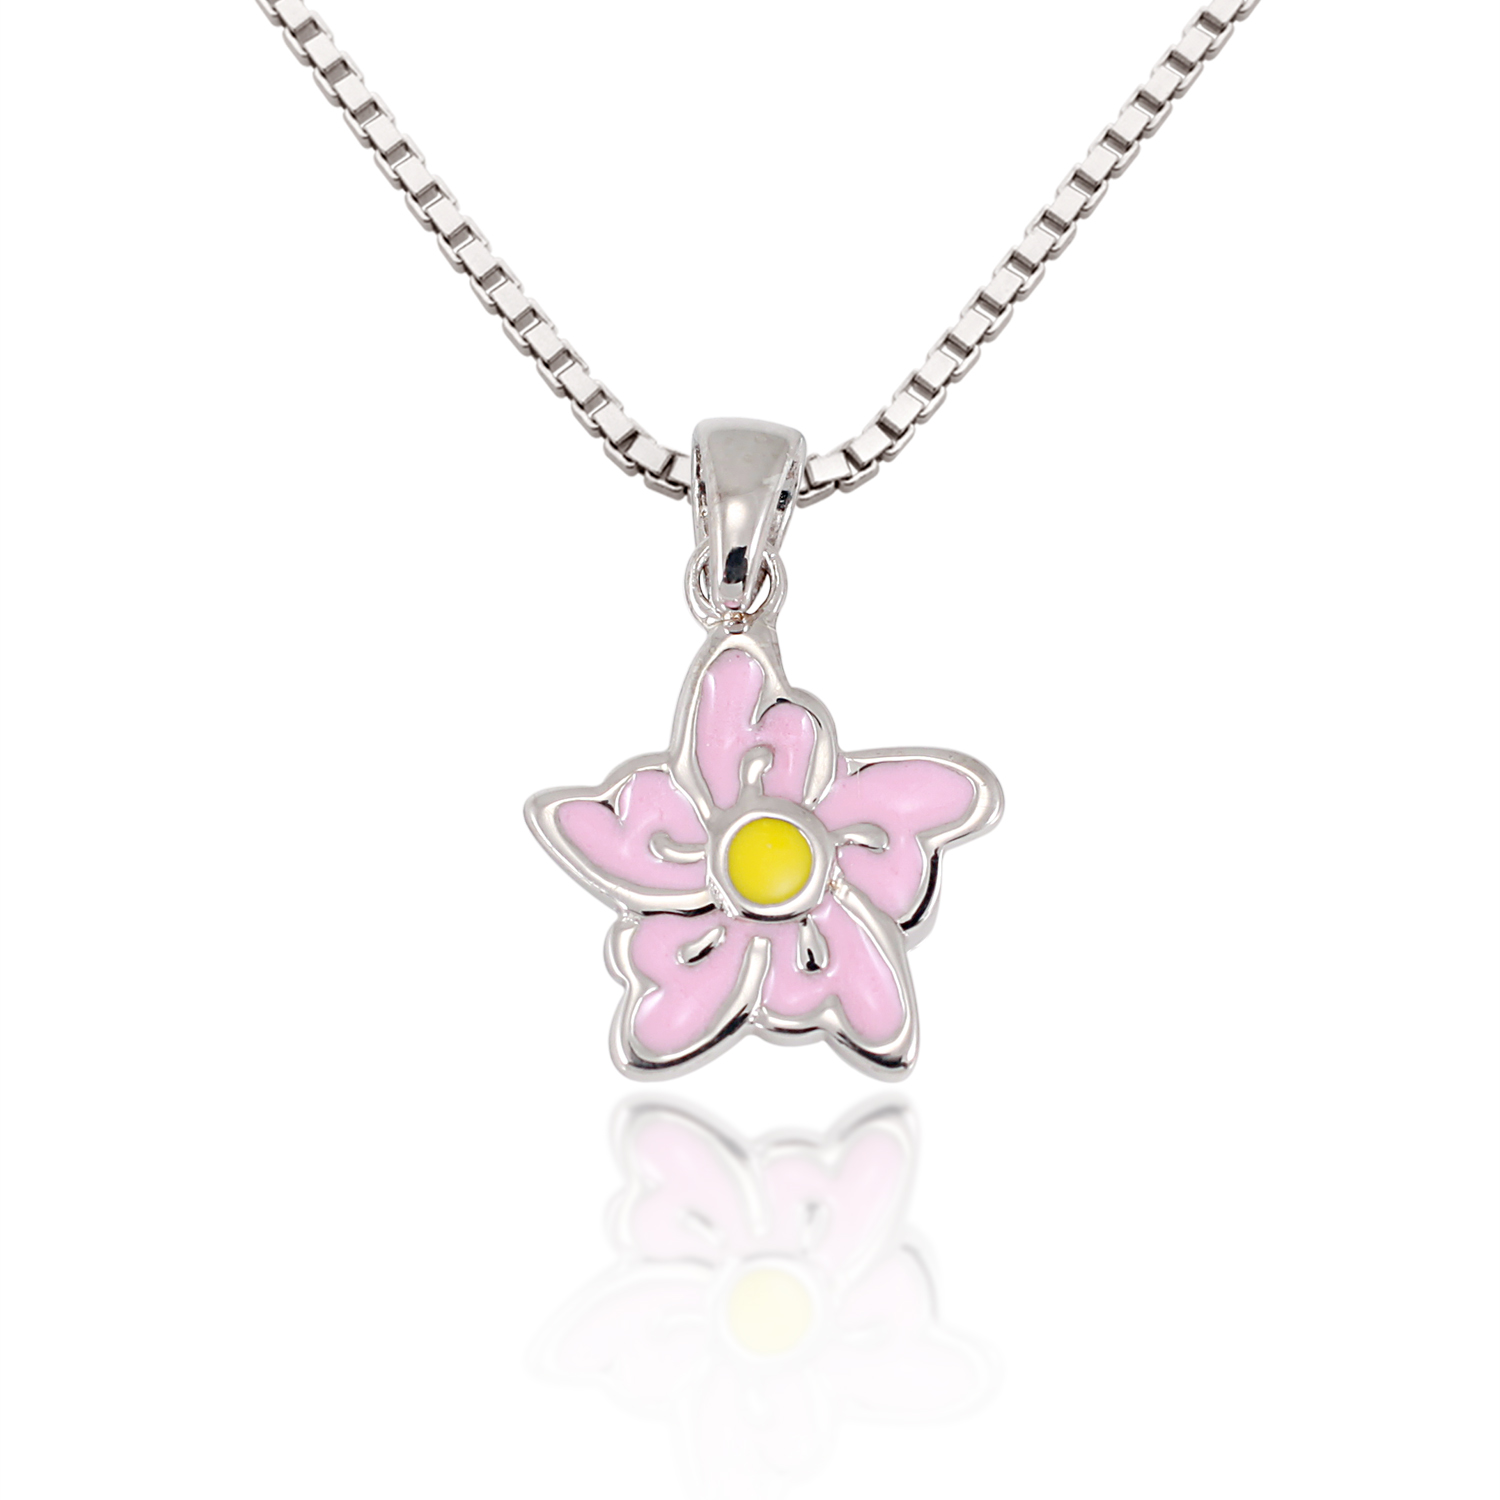 Children's 925 Sterling Silver Pastel Pink Yellow Orchid Flower Pendant Necklace, 13-15 inches